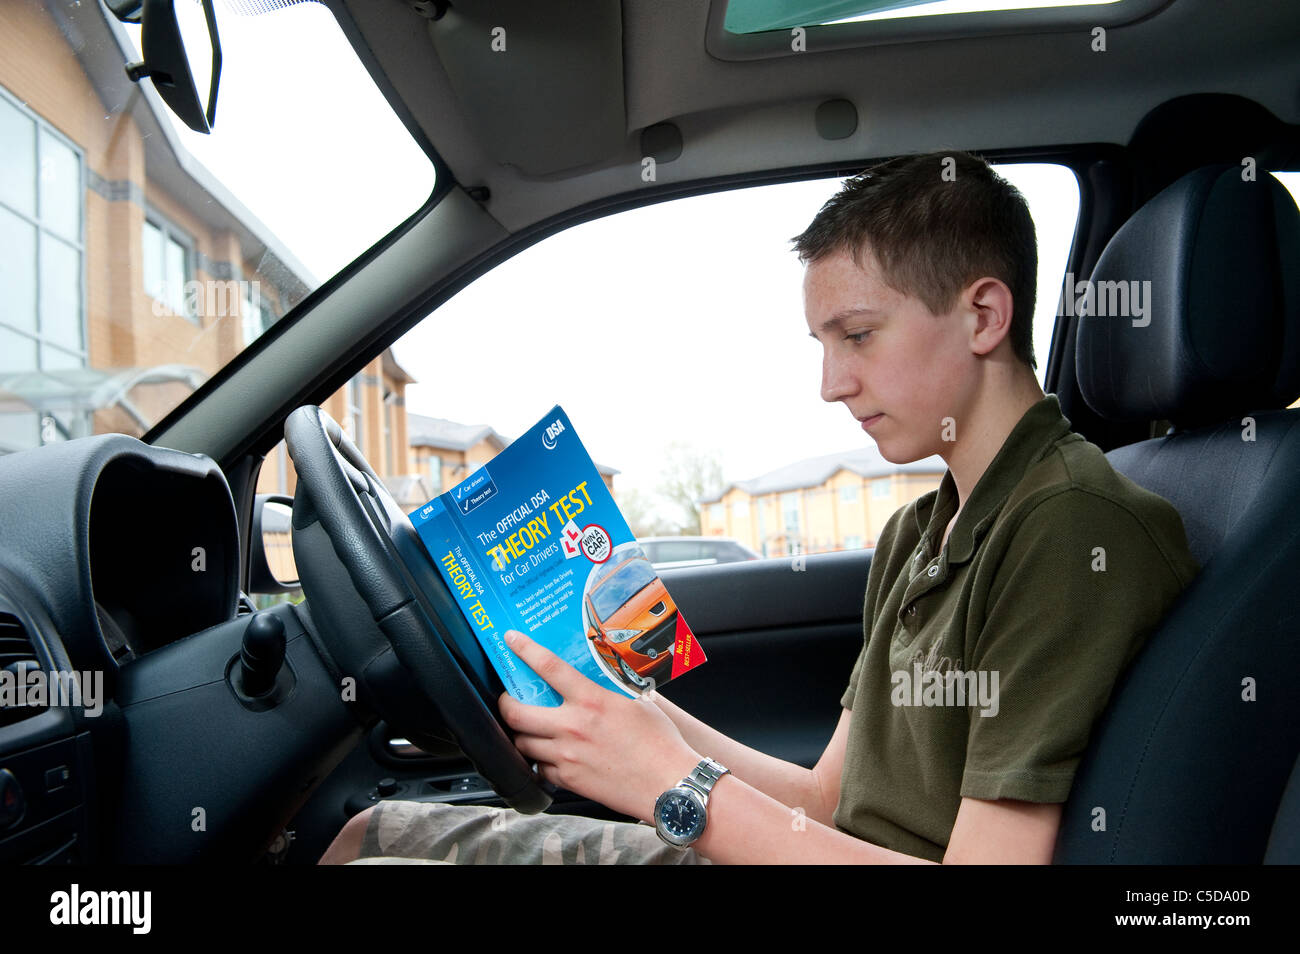 Teenage boy studying the official dsa theory test handbook before a driving lesson. - Stock Image